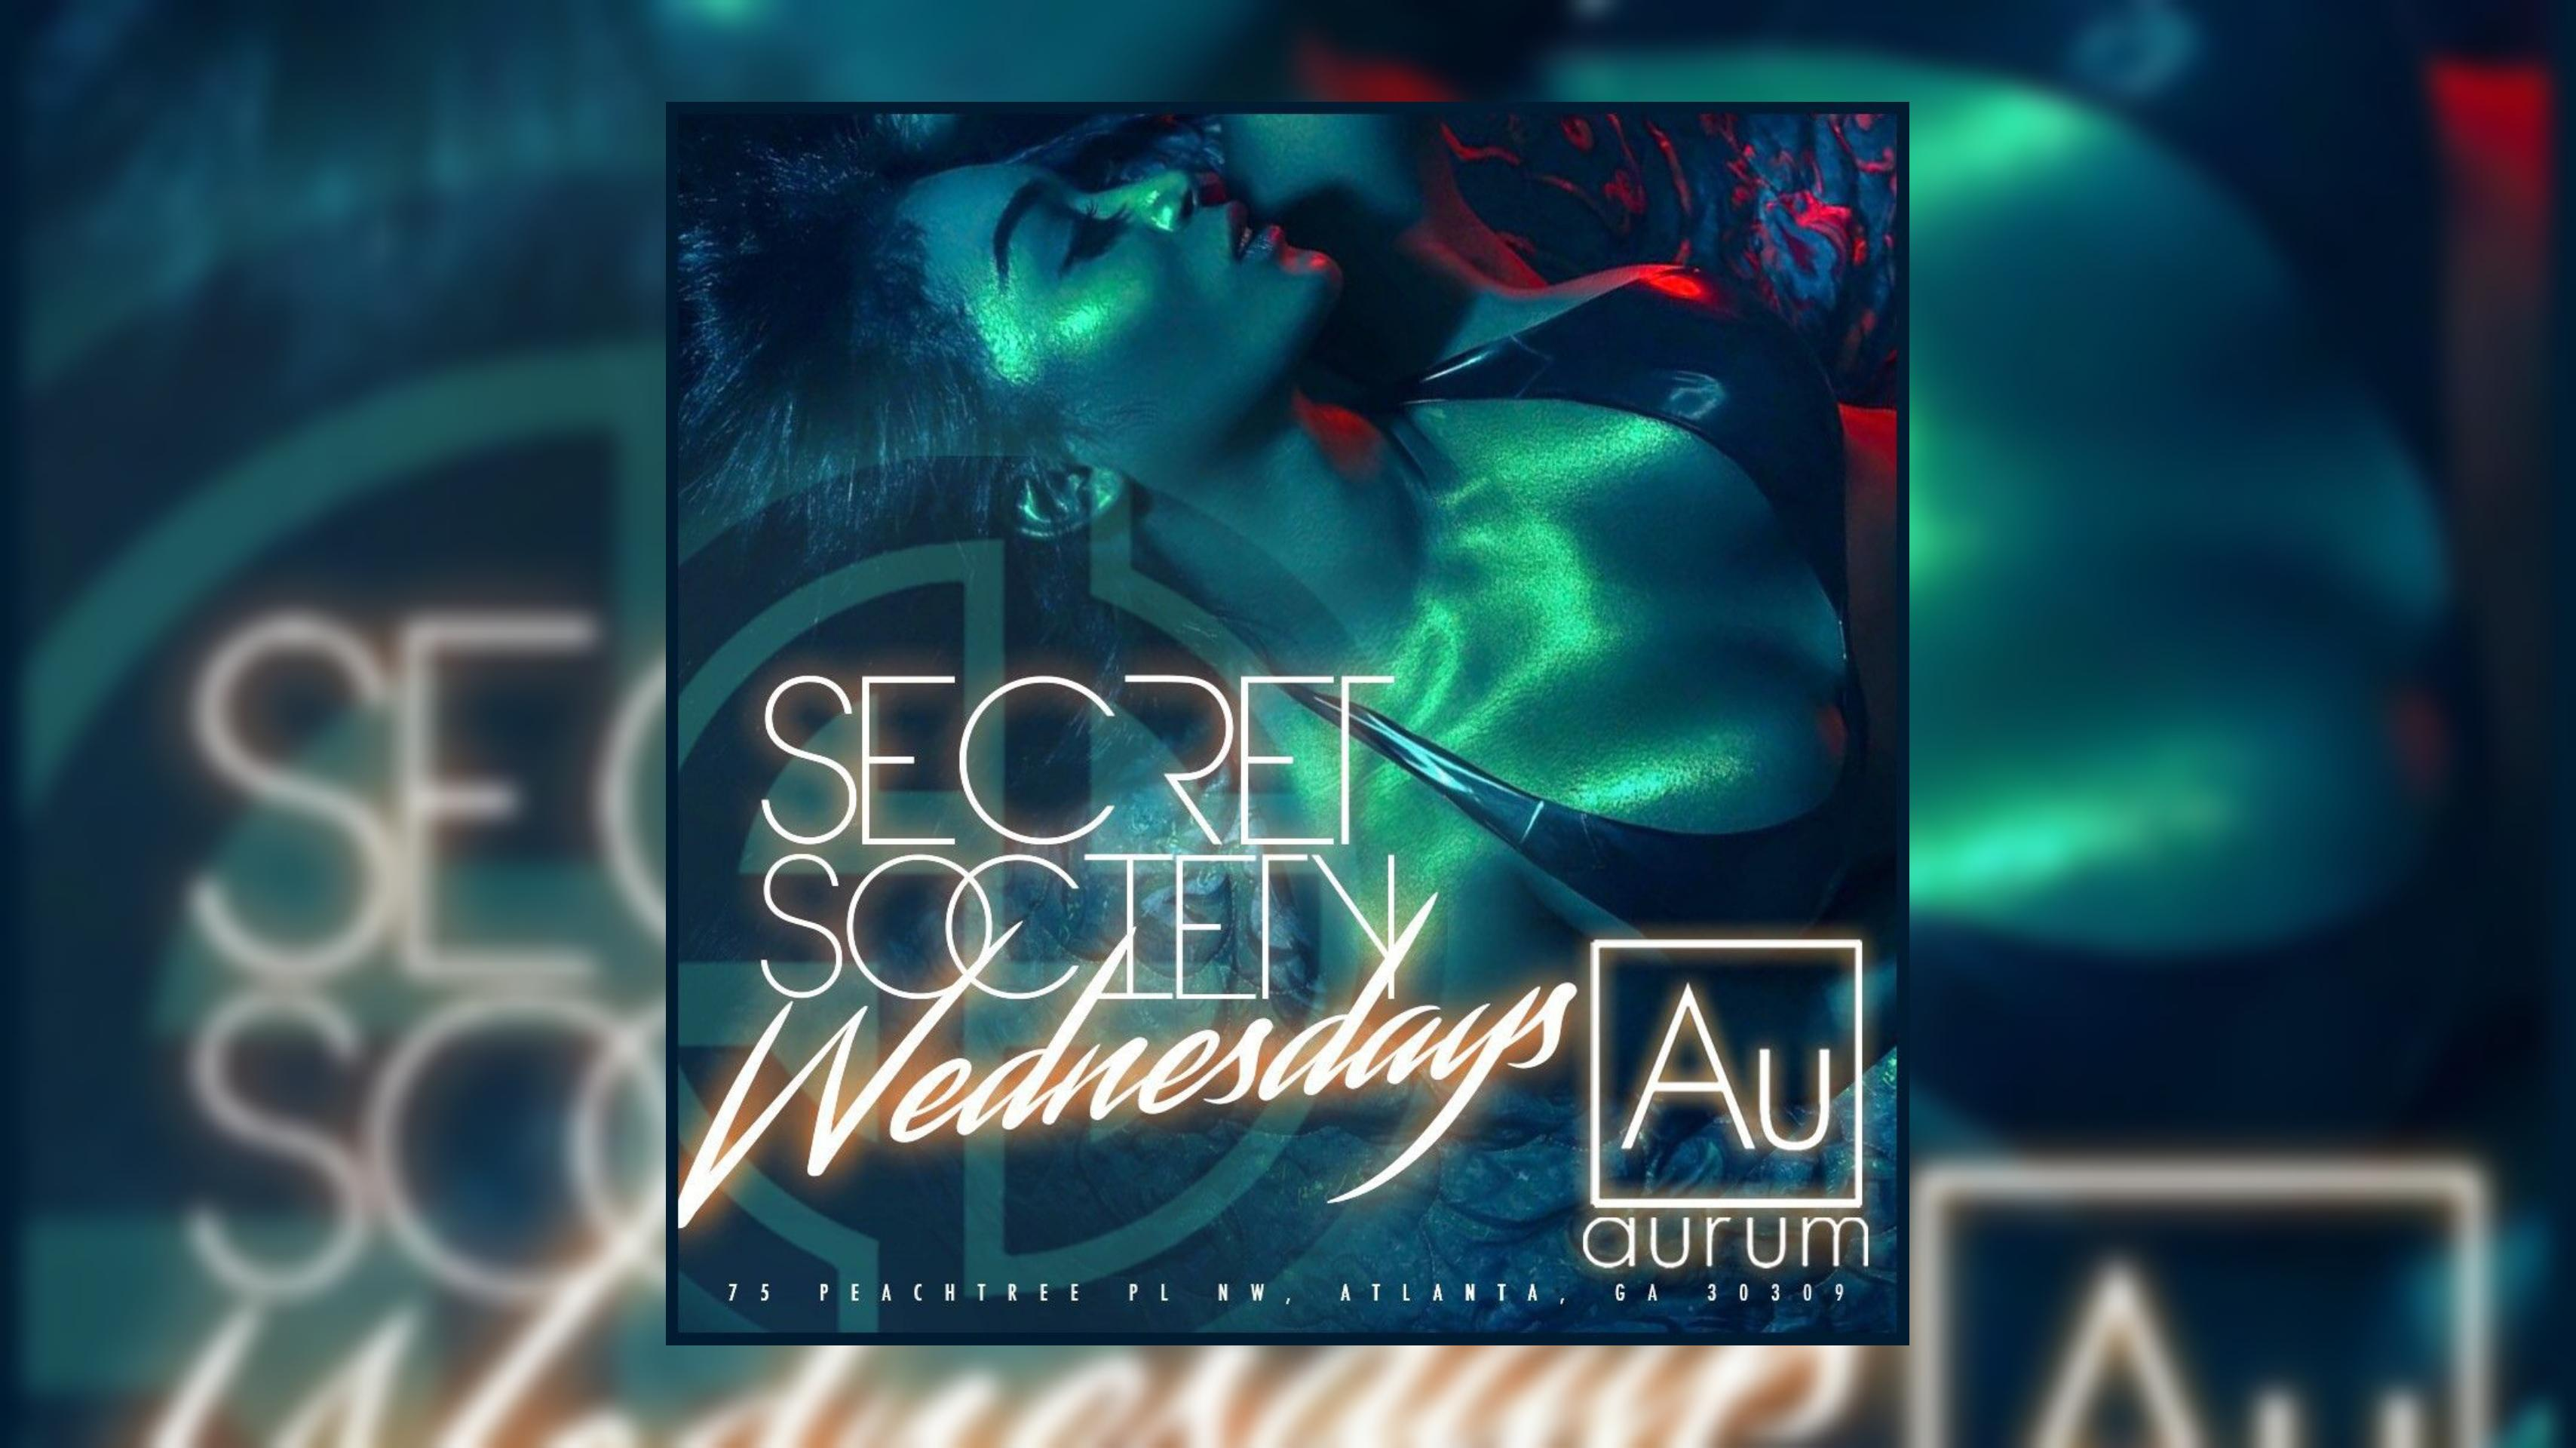 AURUM LOUNGE: #SecretSocietyWednesdays Enter FREE with RSVP